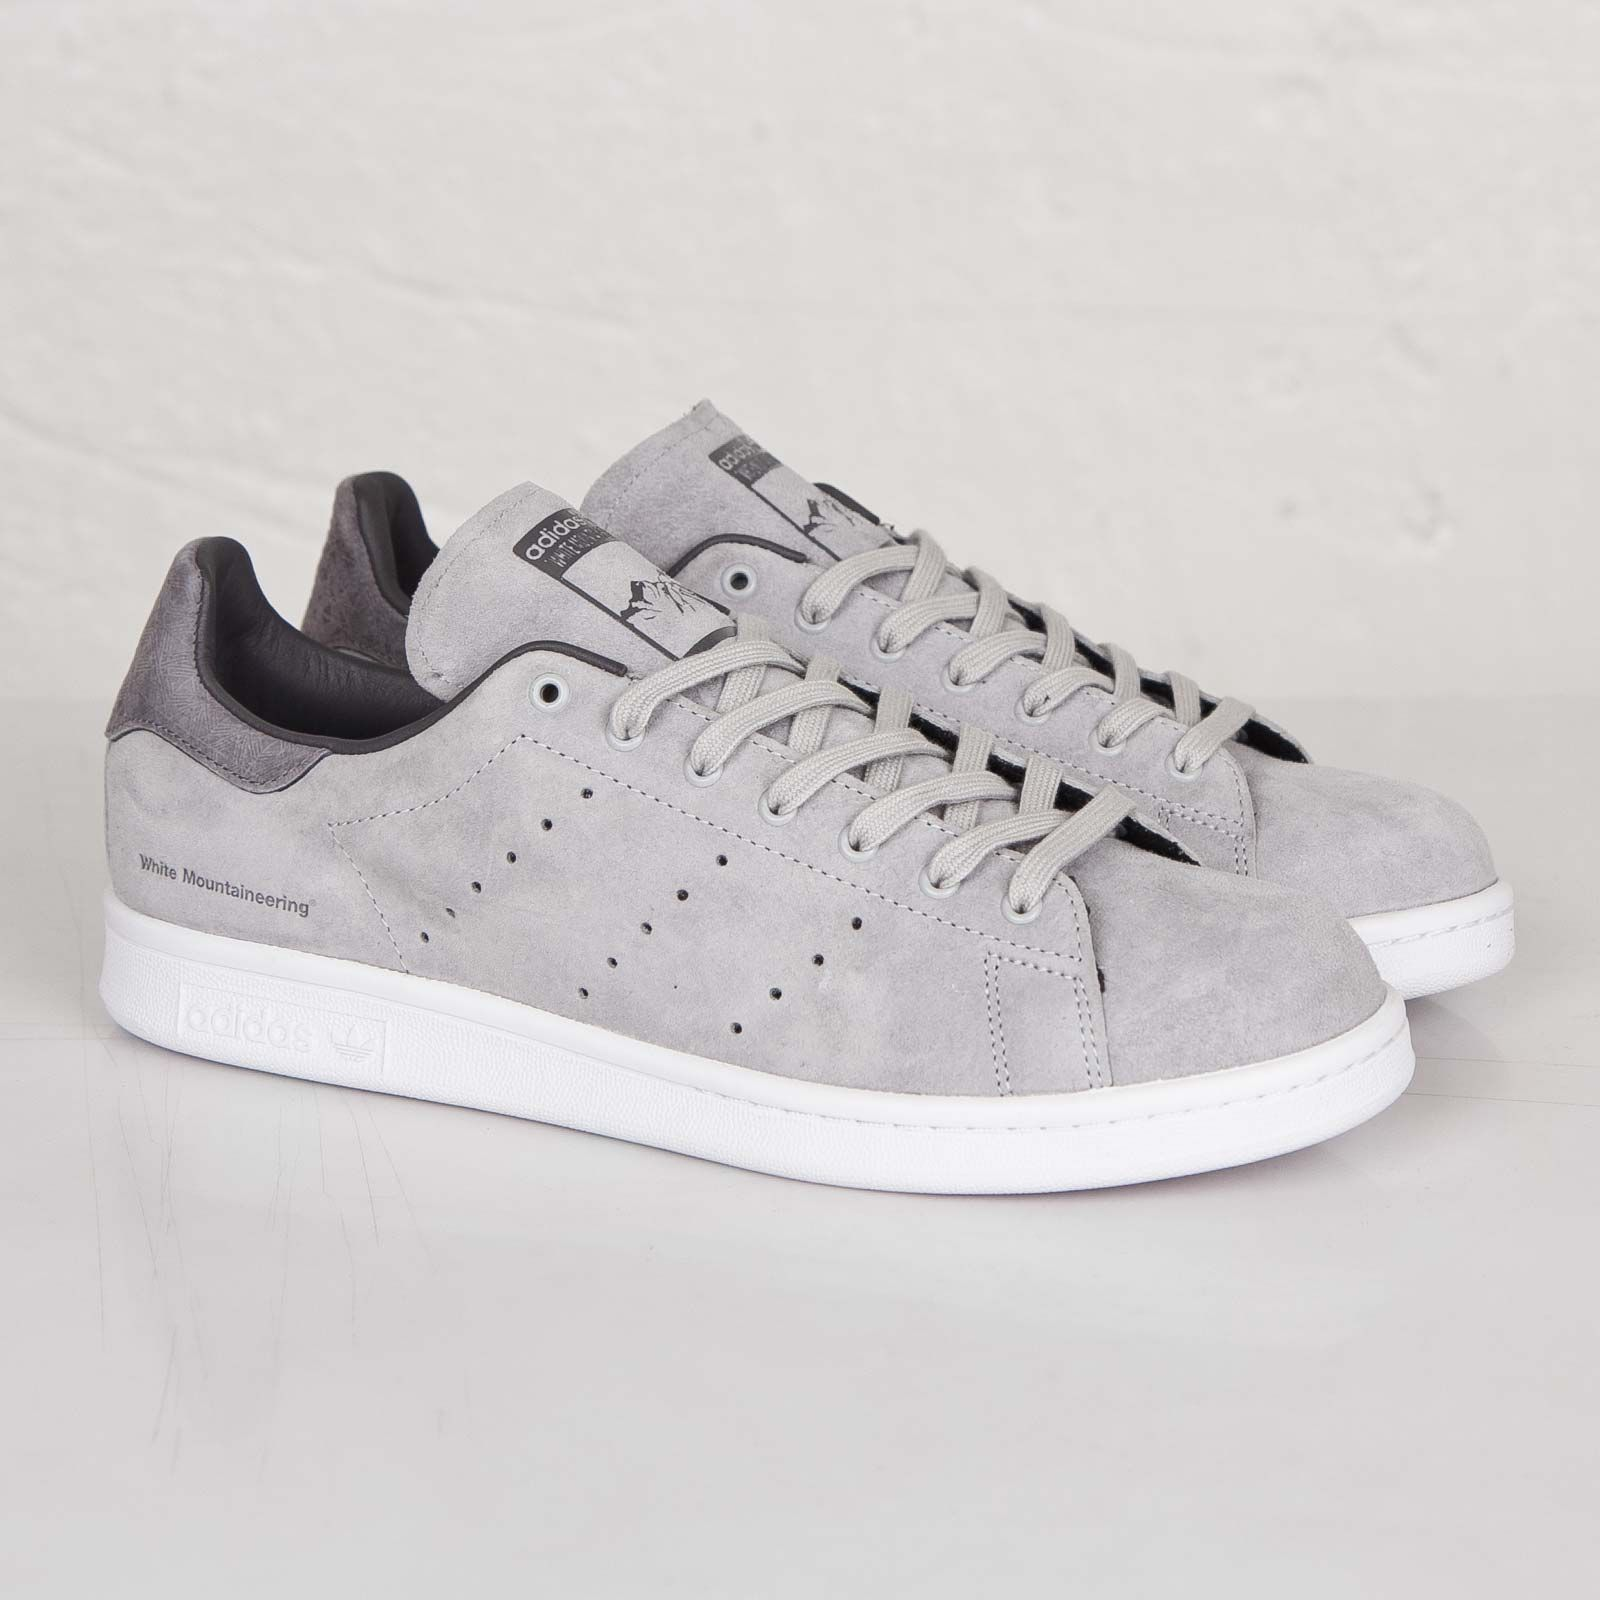 quality design 8a9dd 22177 adidas Stan Smith White Mountaineering   Sneakers shopping ...